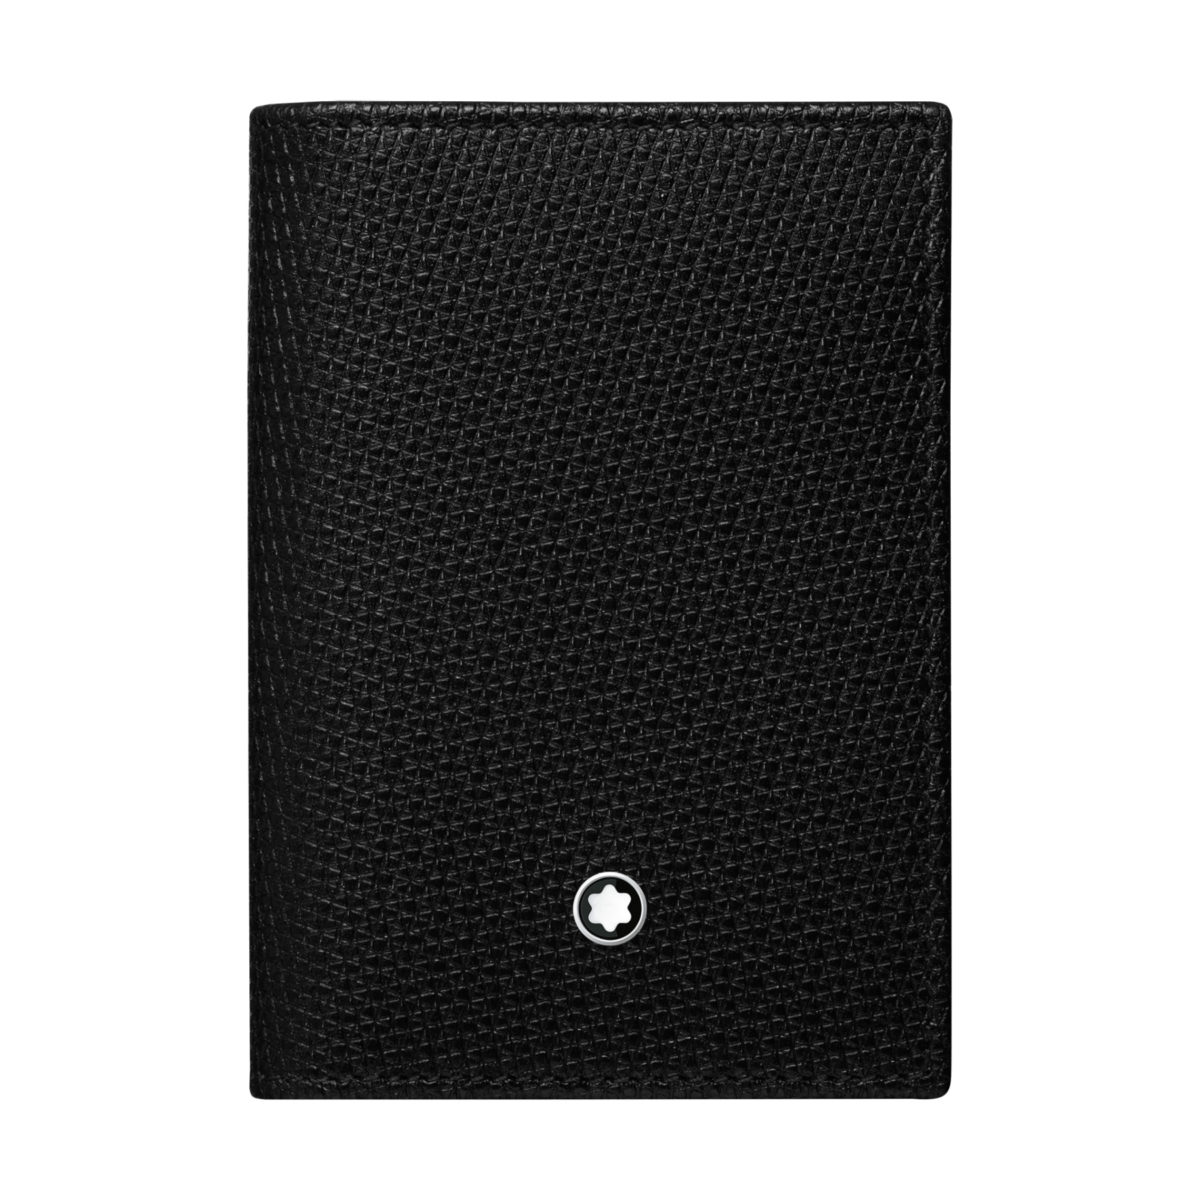 116317 — Montblanc Mst Sel Unicef Bch With Gusset Black